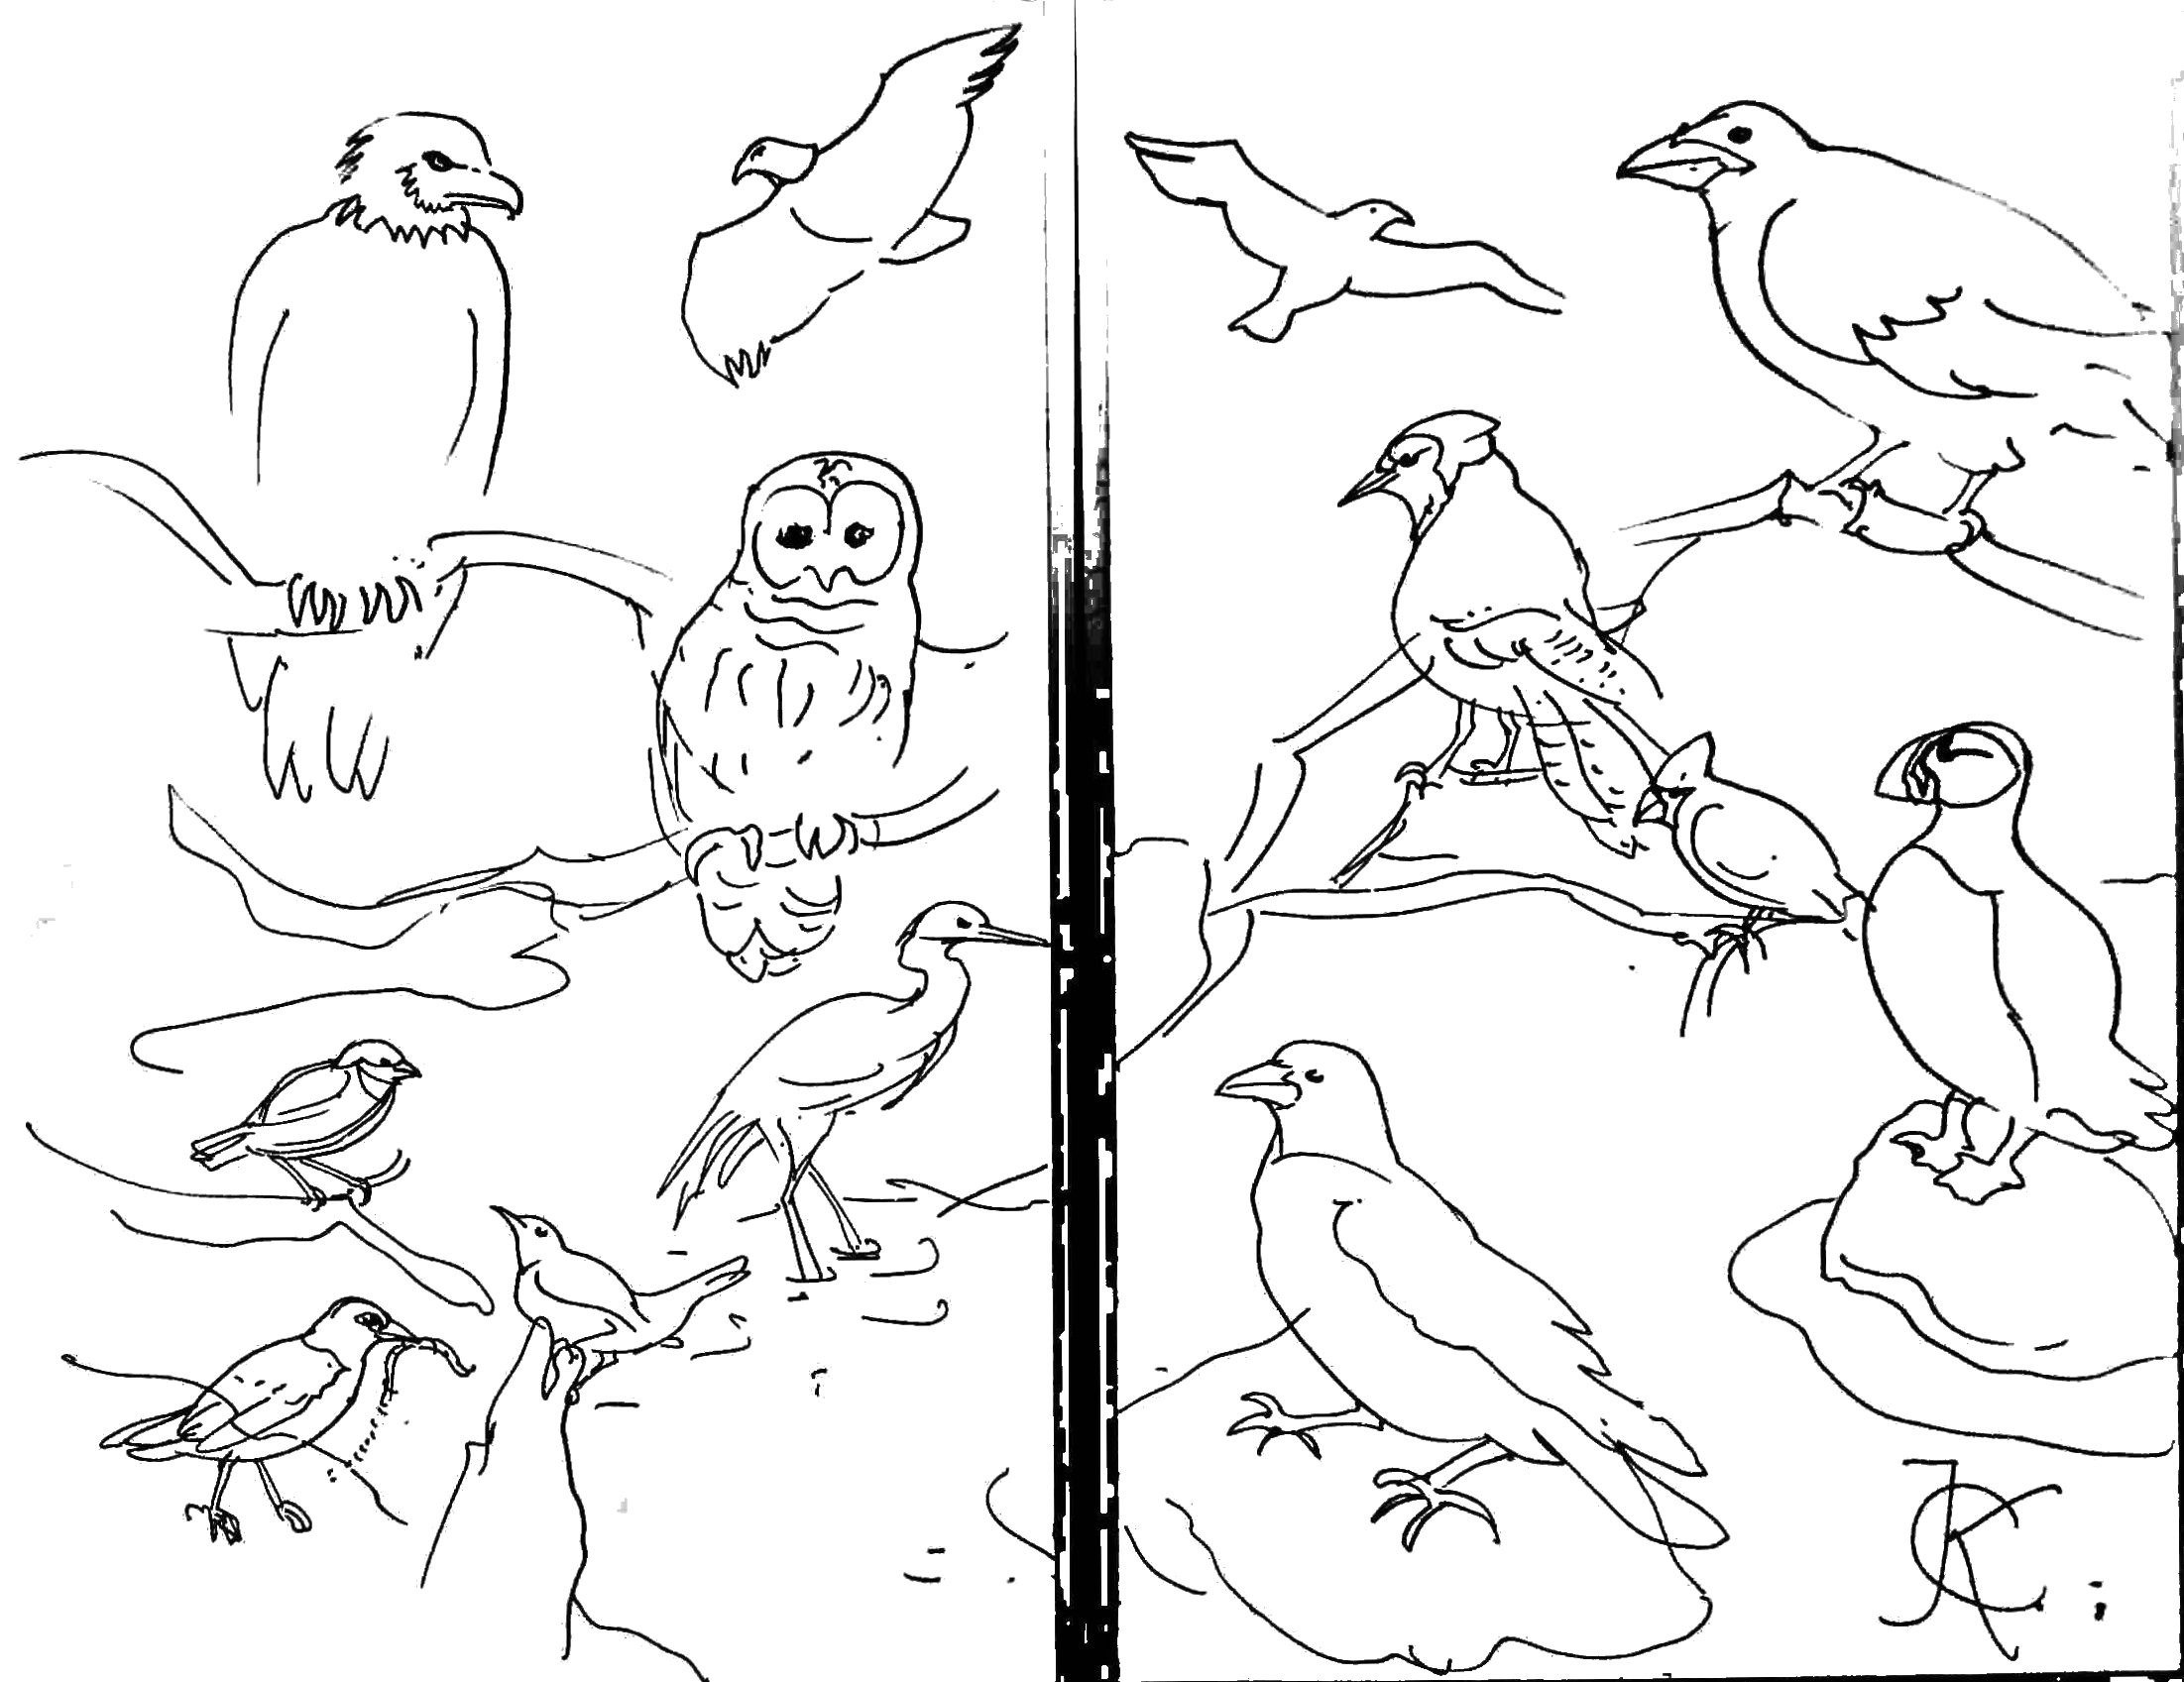 maine birds coloring page coloring page demo drawing by catinka knoth